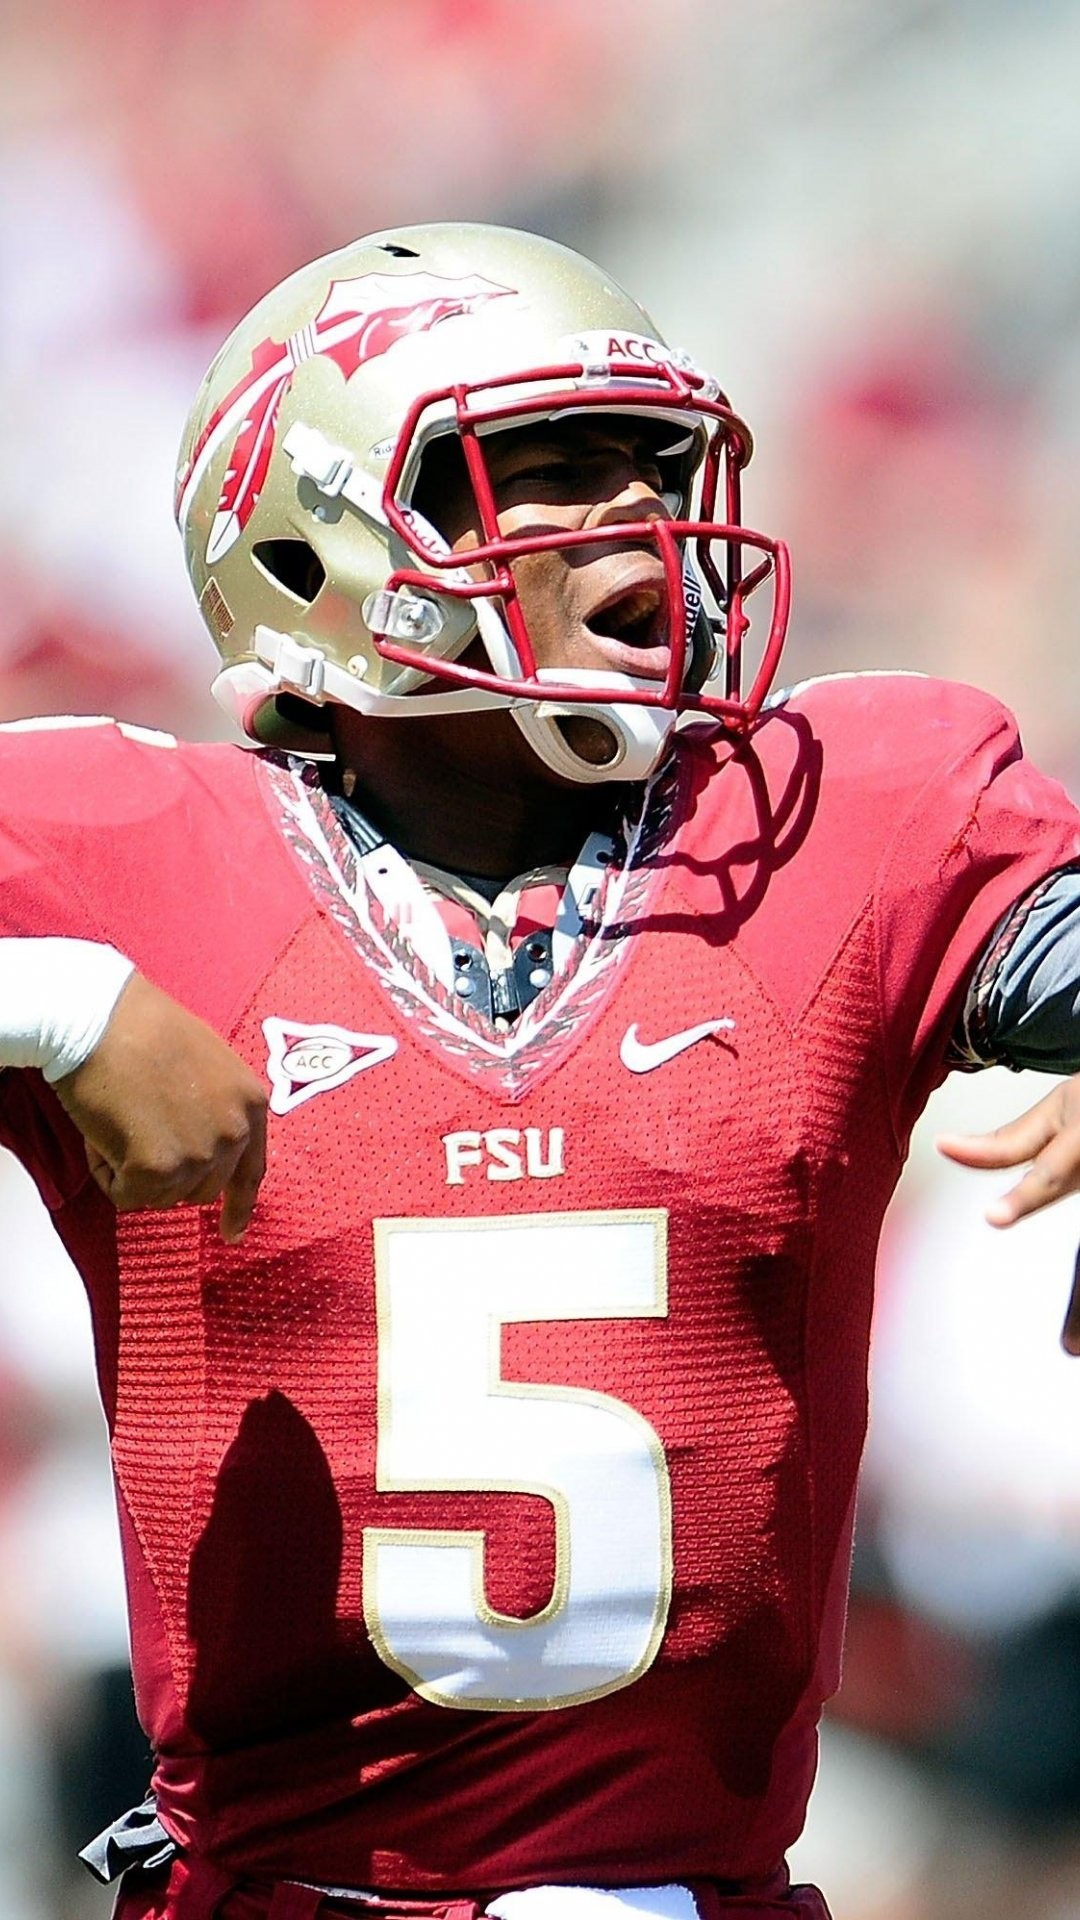 Florida State iPhone 6 Plus Wallpaper 20637 – Sports iPhone 6 Plus  Wallpapers